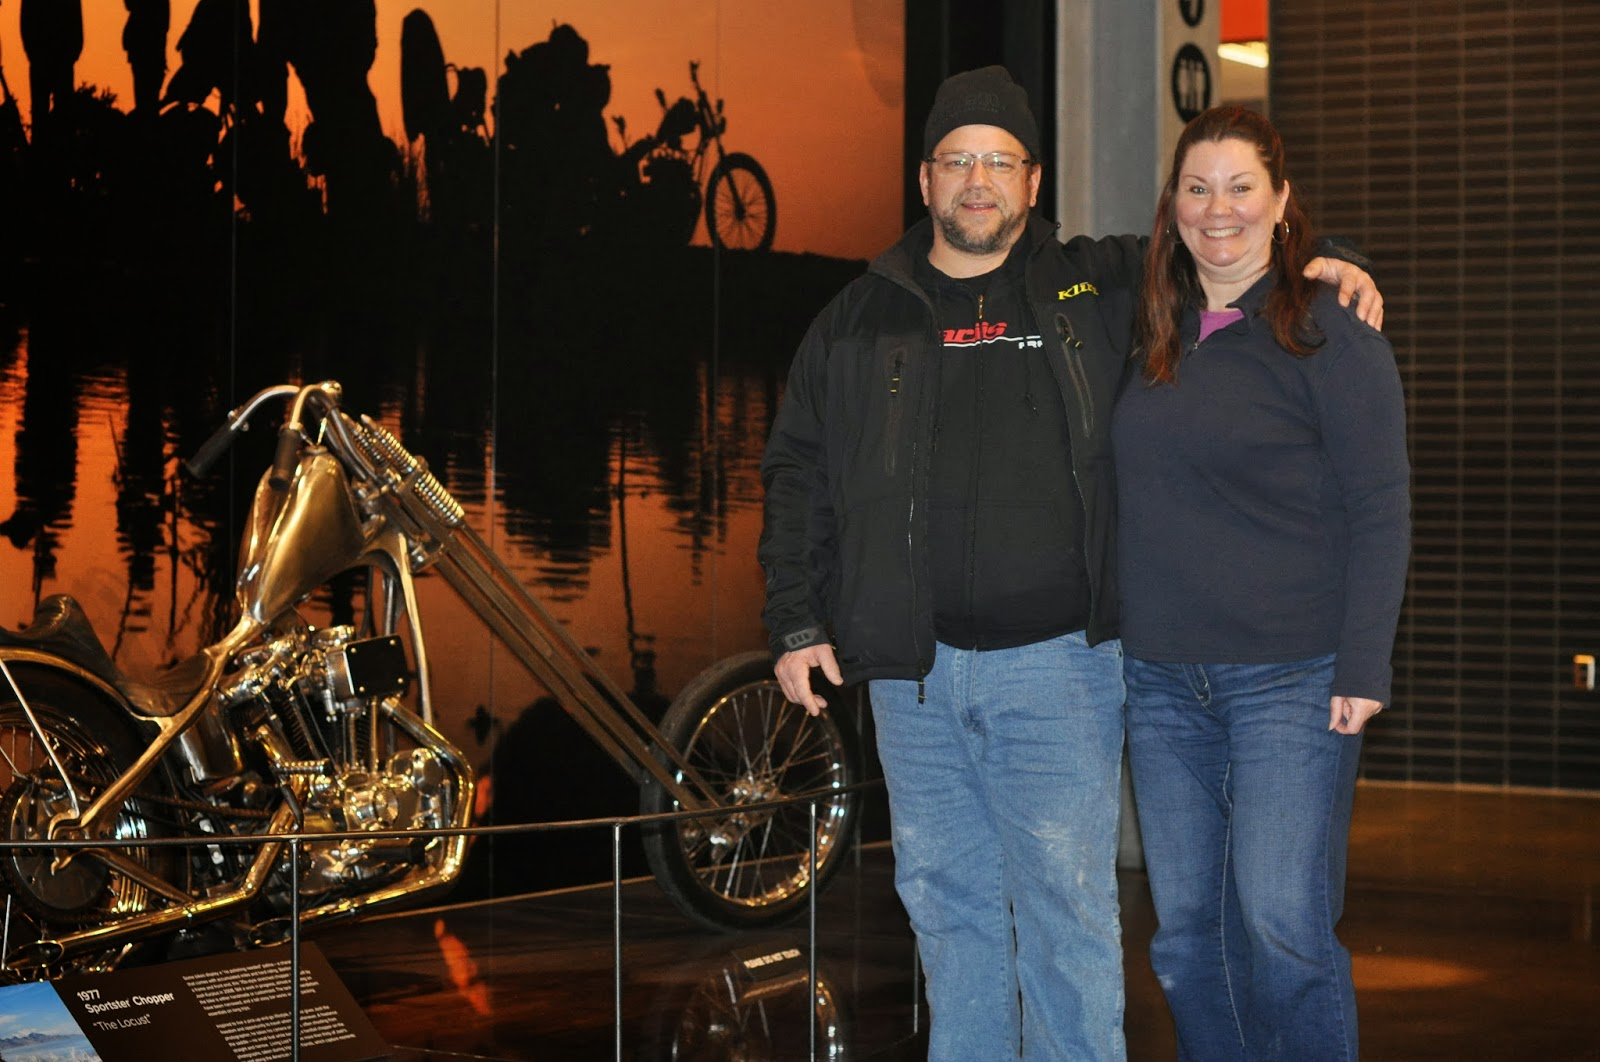 A Visit to the Harley-Davidson Museum